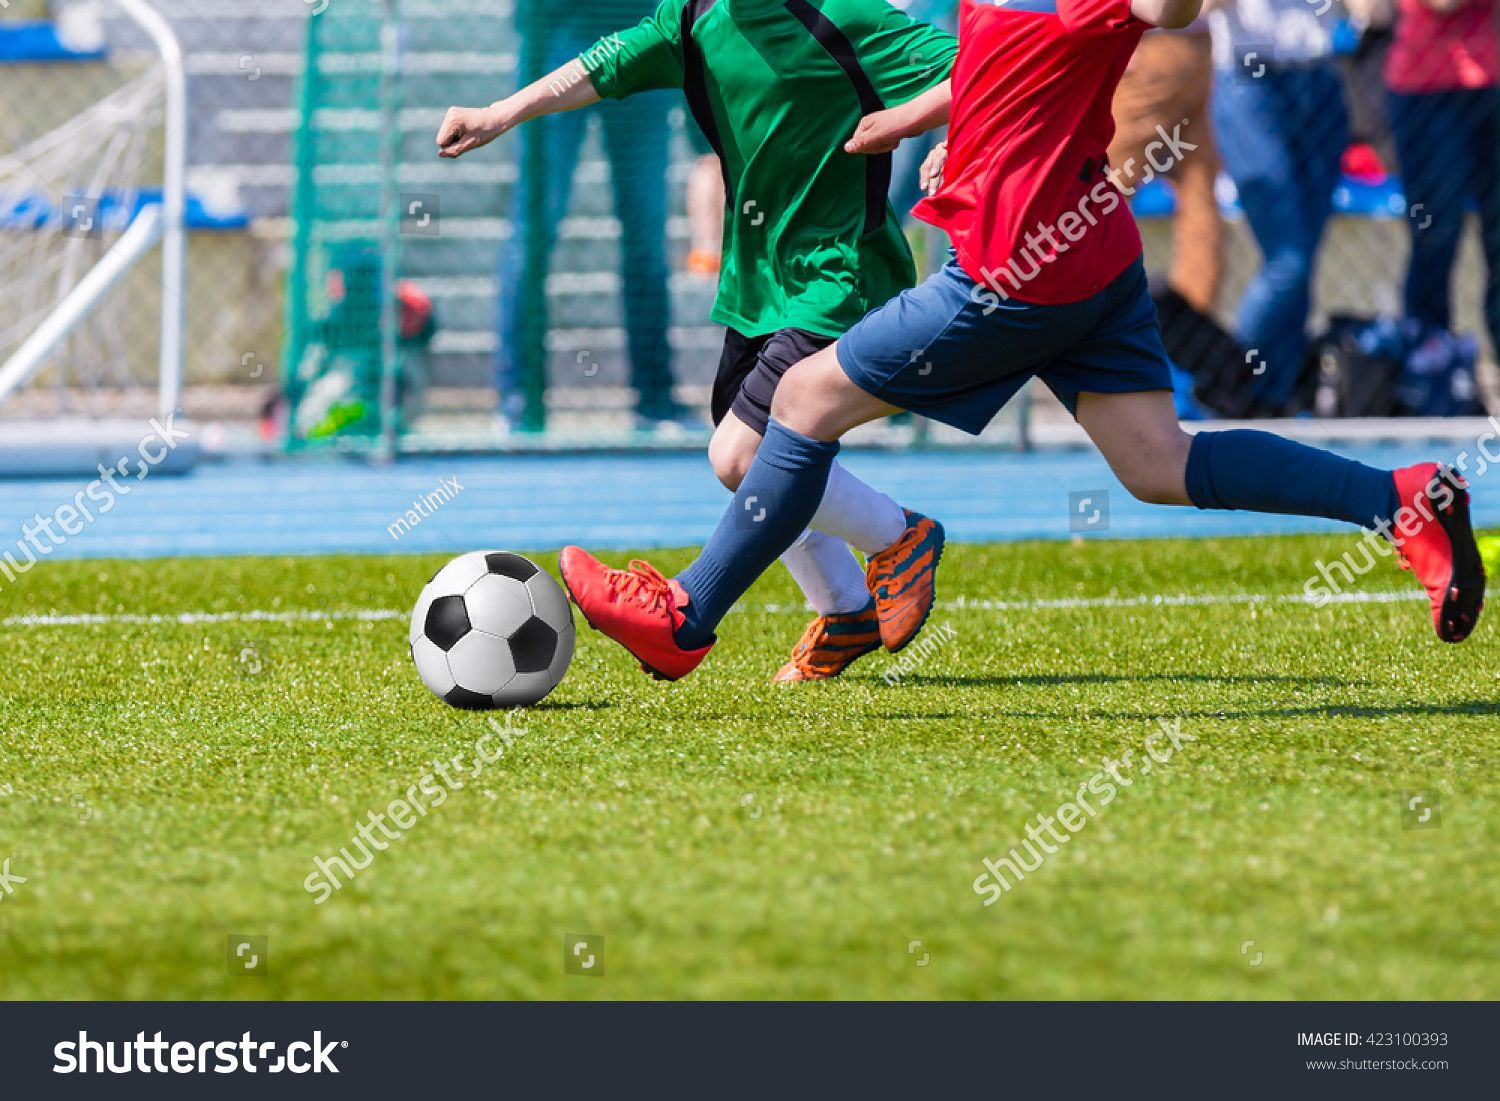 Players Playing Football Soccer Game Running Players In Green And Red Outfit Sports Uniforms Ad Sponsored Playing Football Soccer Games Football Soccer